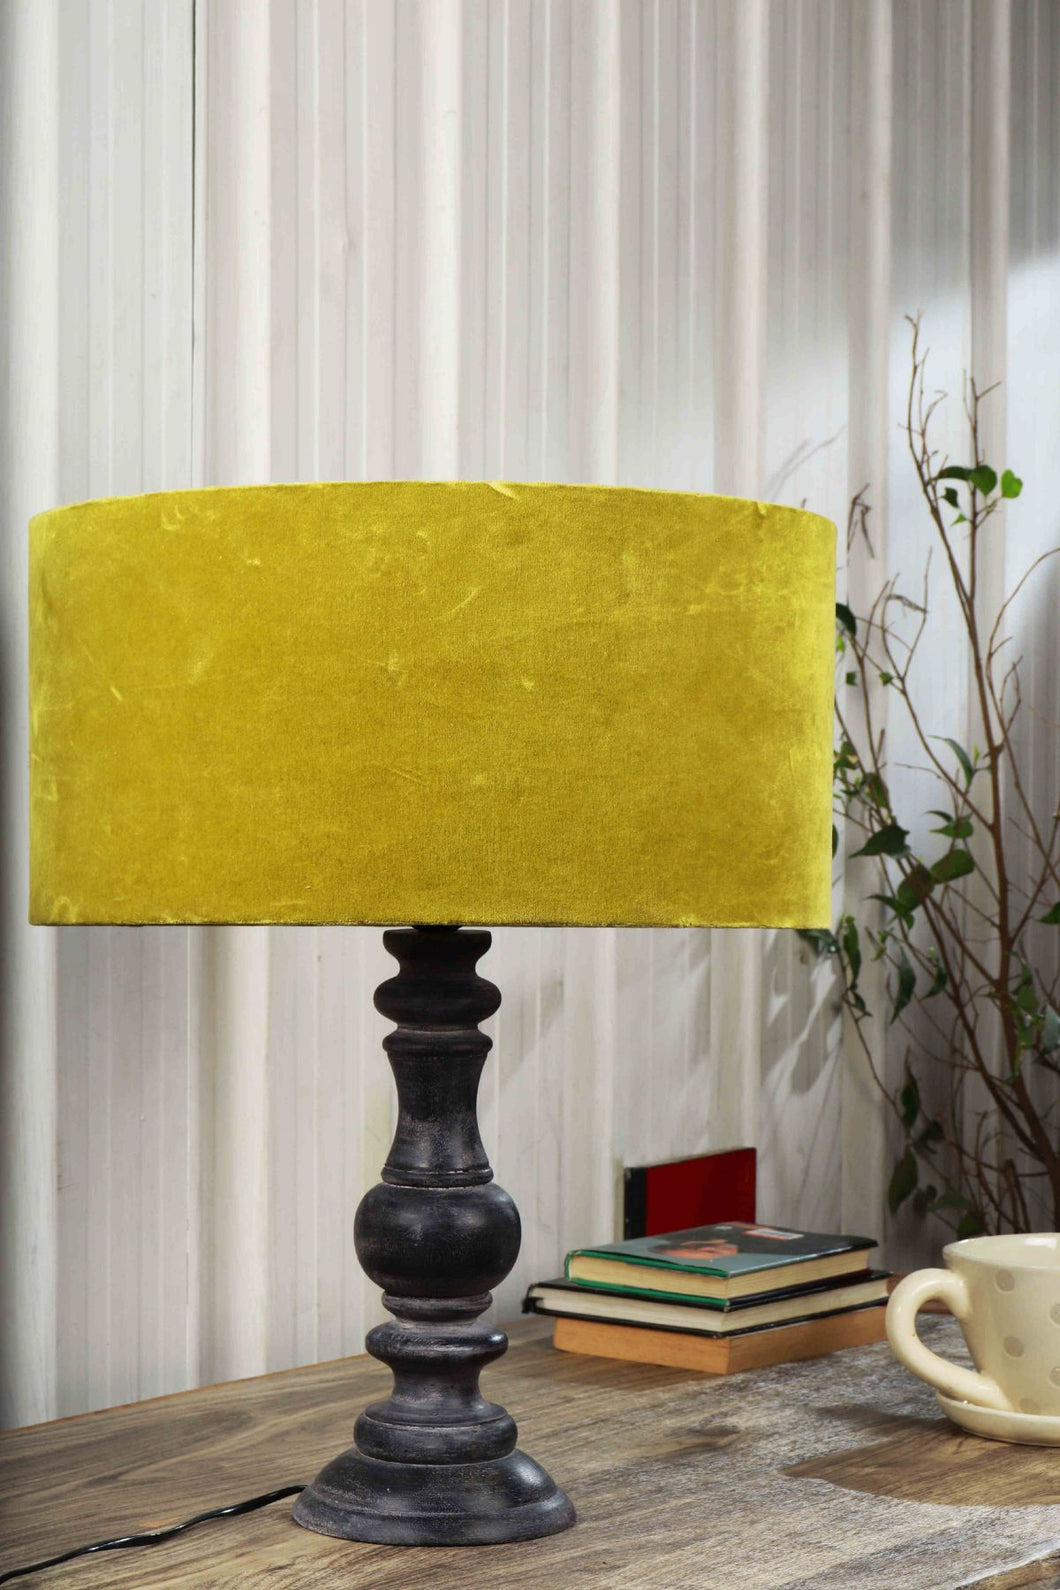 Shady Black Table Lamp with Olive Green Lampshade